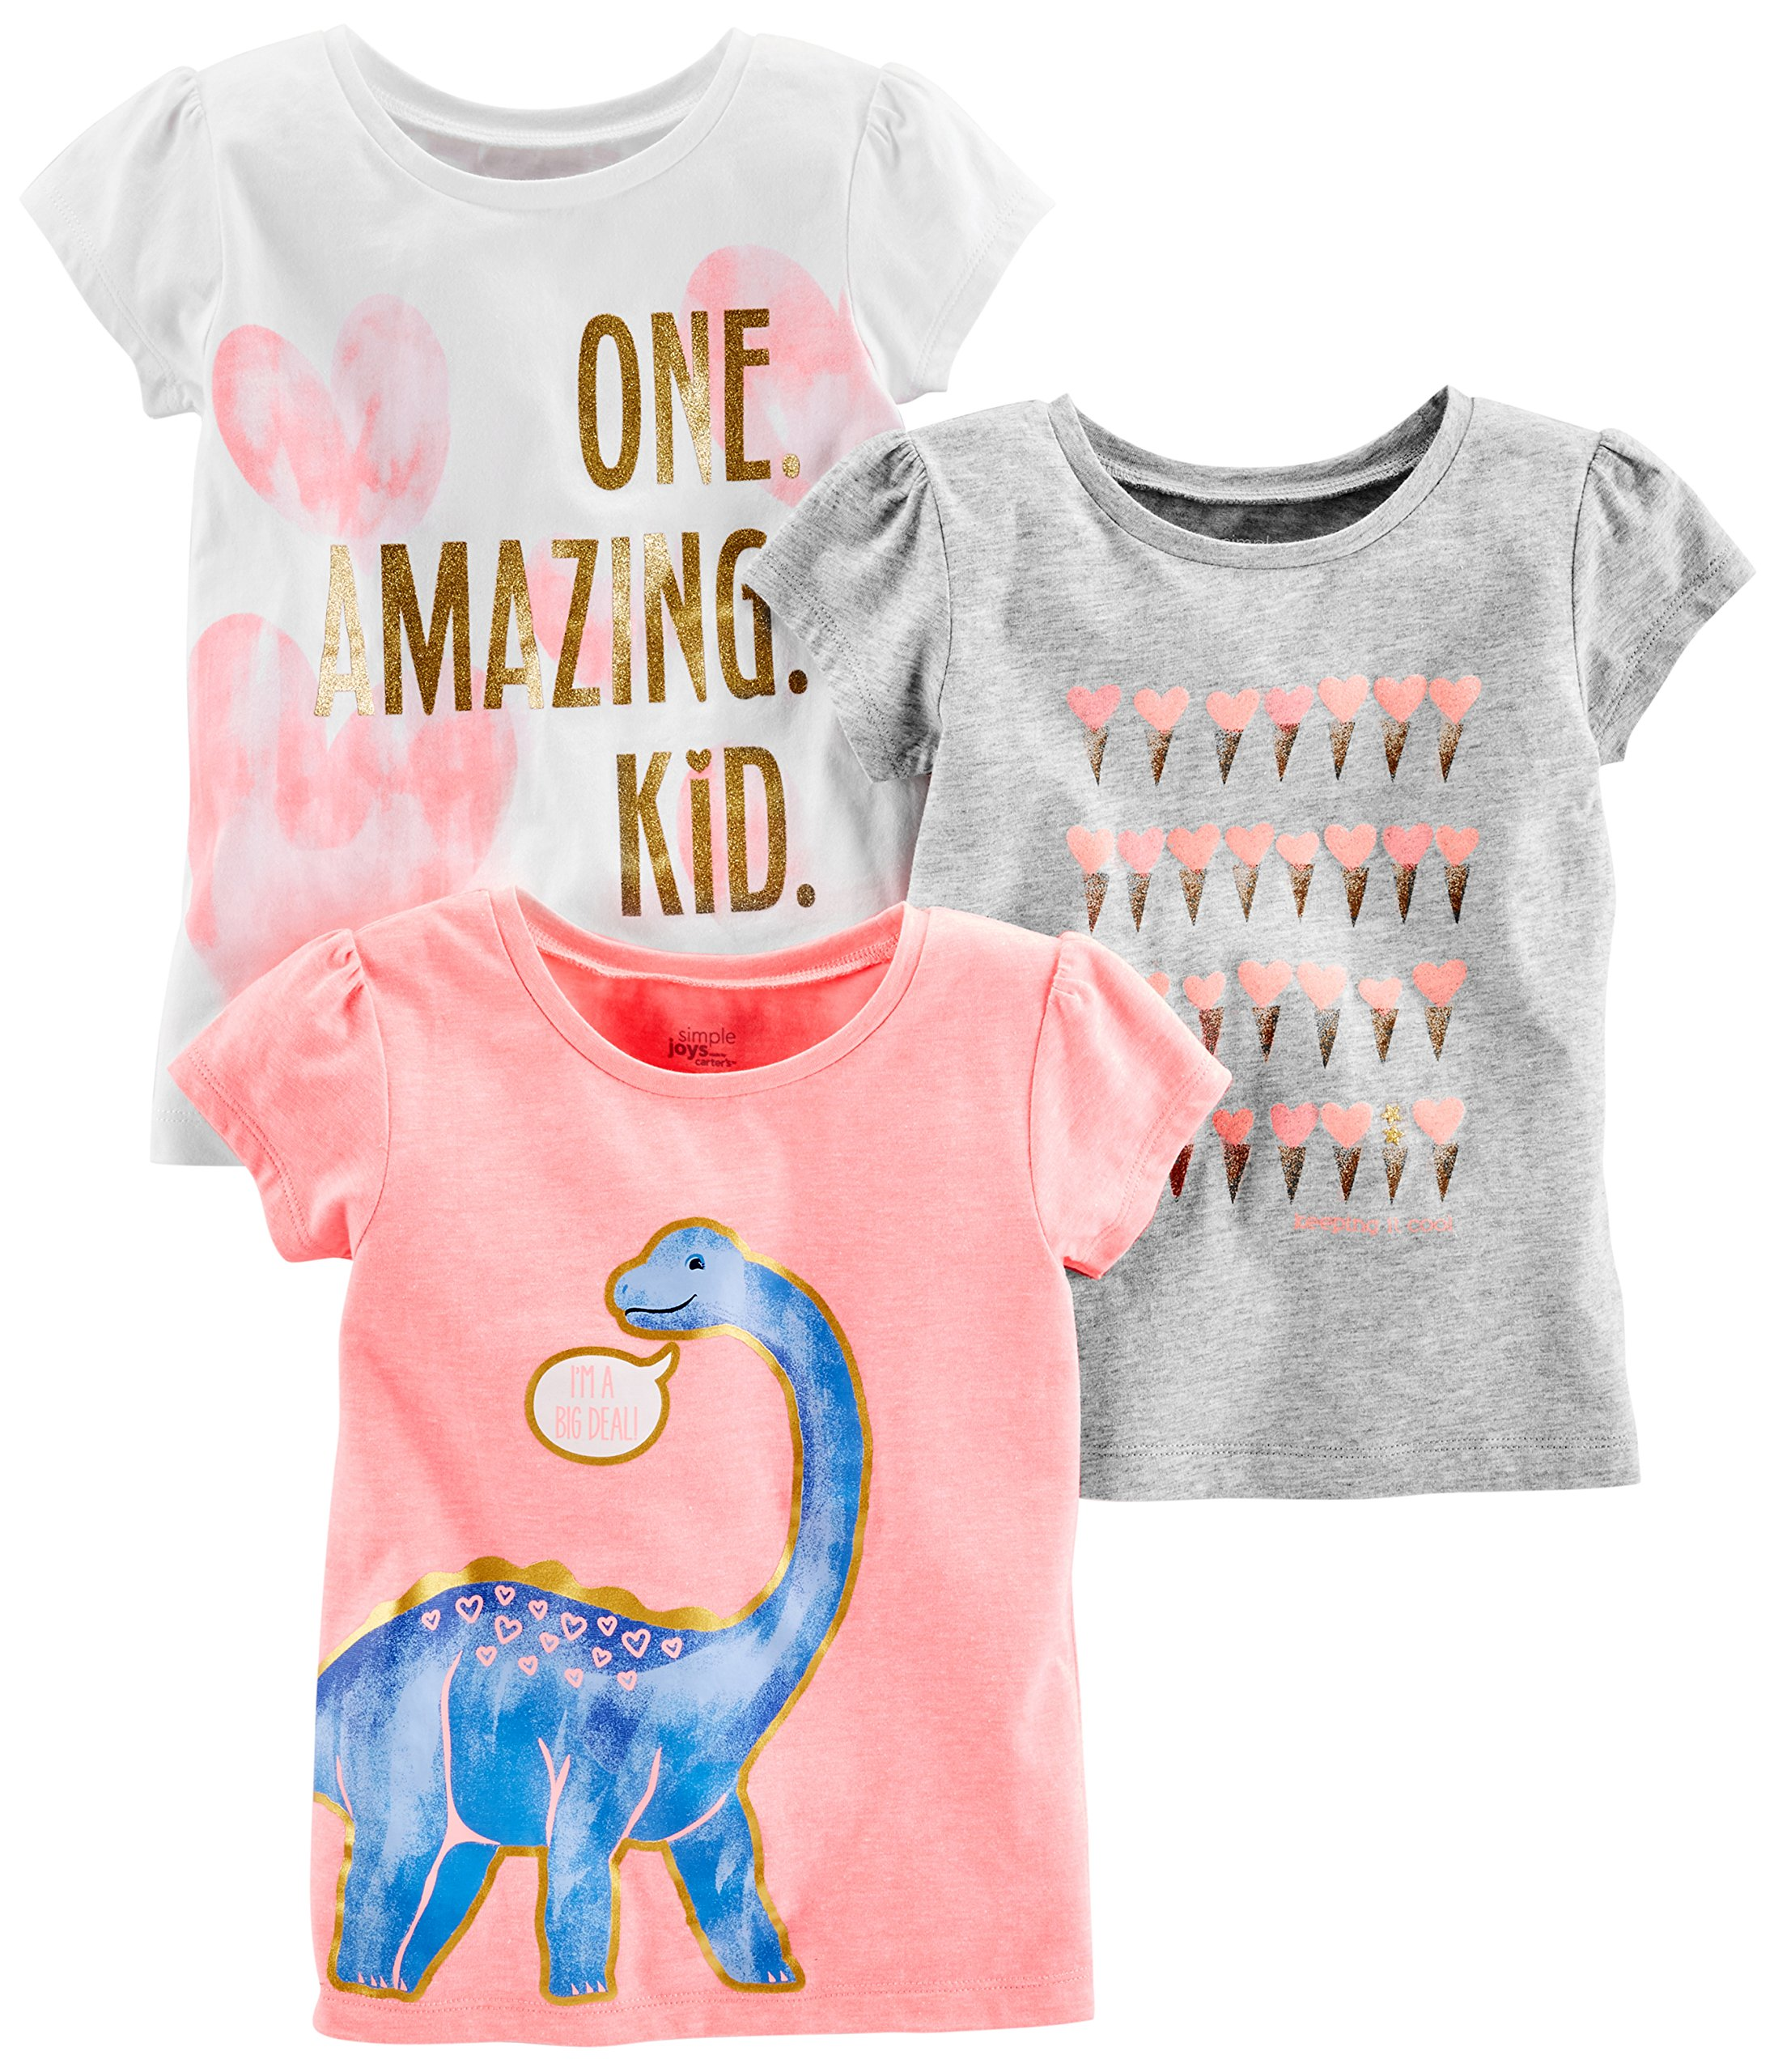 Simple Joys by Carter's Baby Girls' Toddler 3-Pack Graphic Tees, Pink Dino, Gray, White Heart, 3T